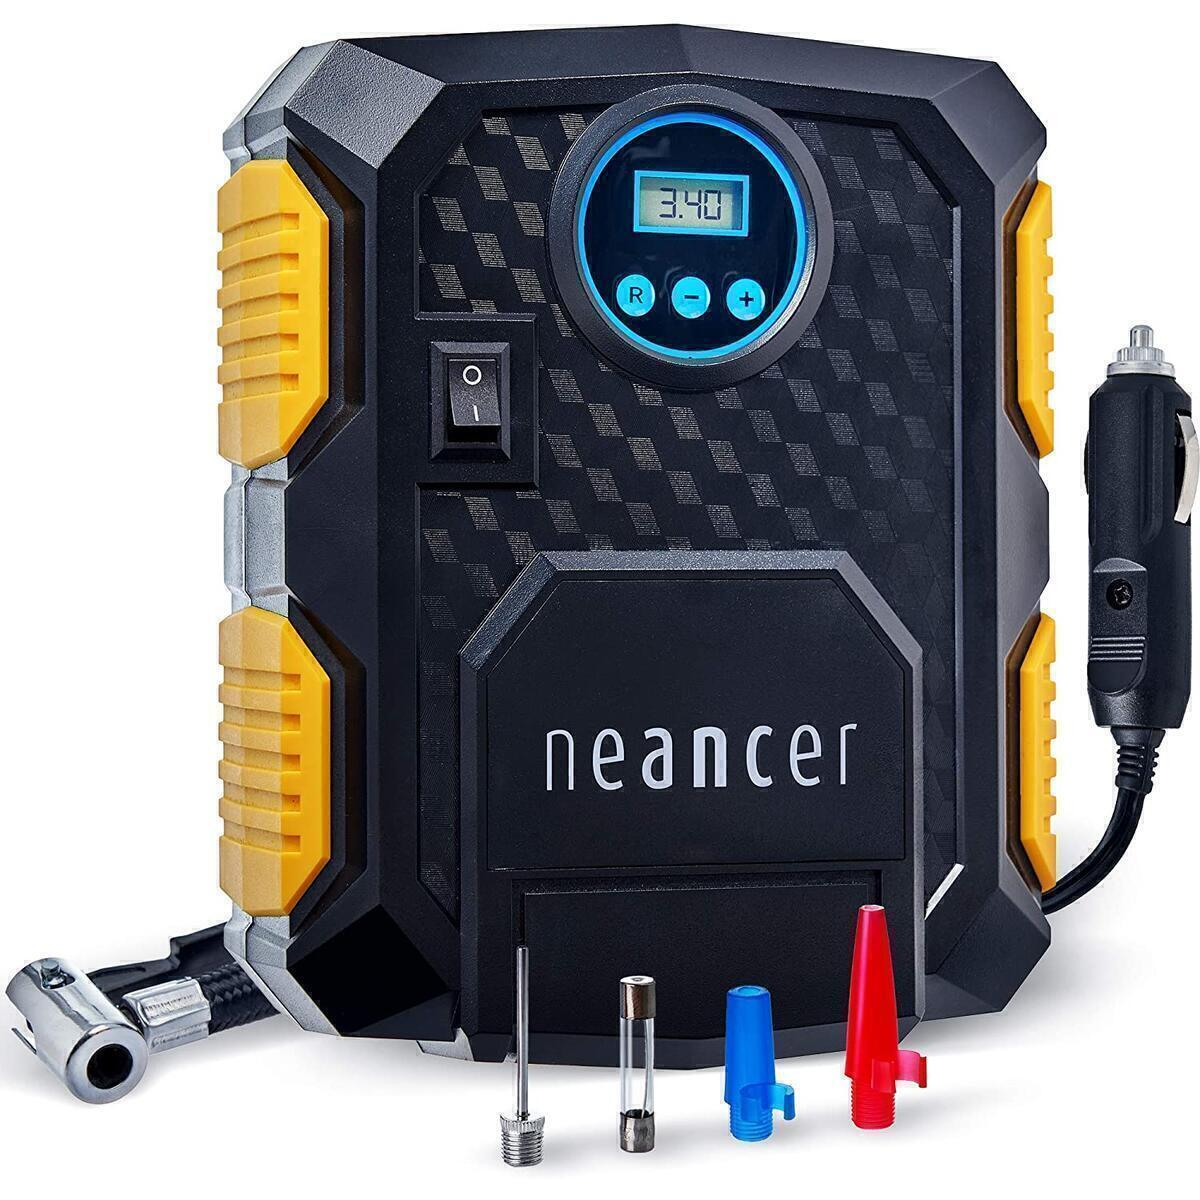 Neancer Digital Tire Inflator with Gauge, Mini Electric Air Pump - Portable Air Compressor for Car Tires, 12V – Small Air Compressor Machine for Inflating Automobile, Blow Up Mattress, Bike Tires